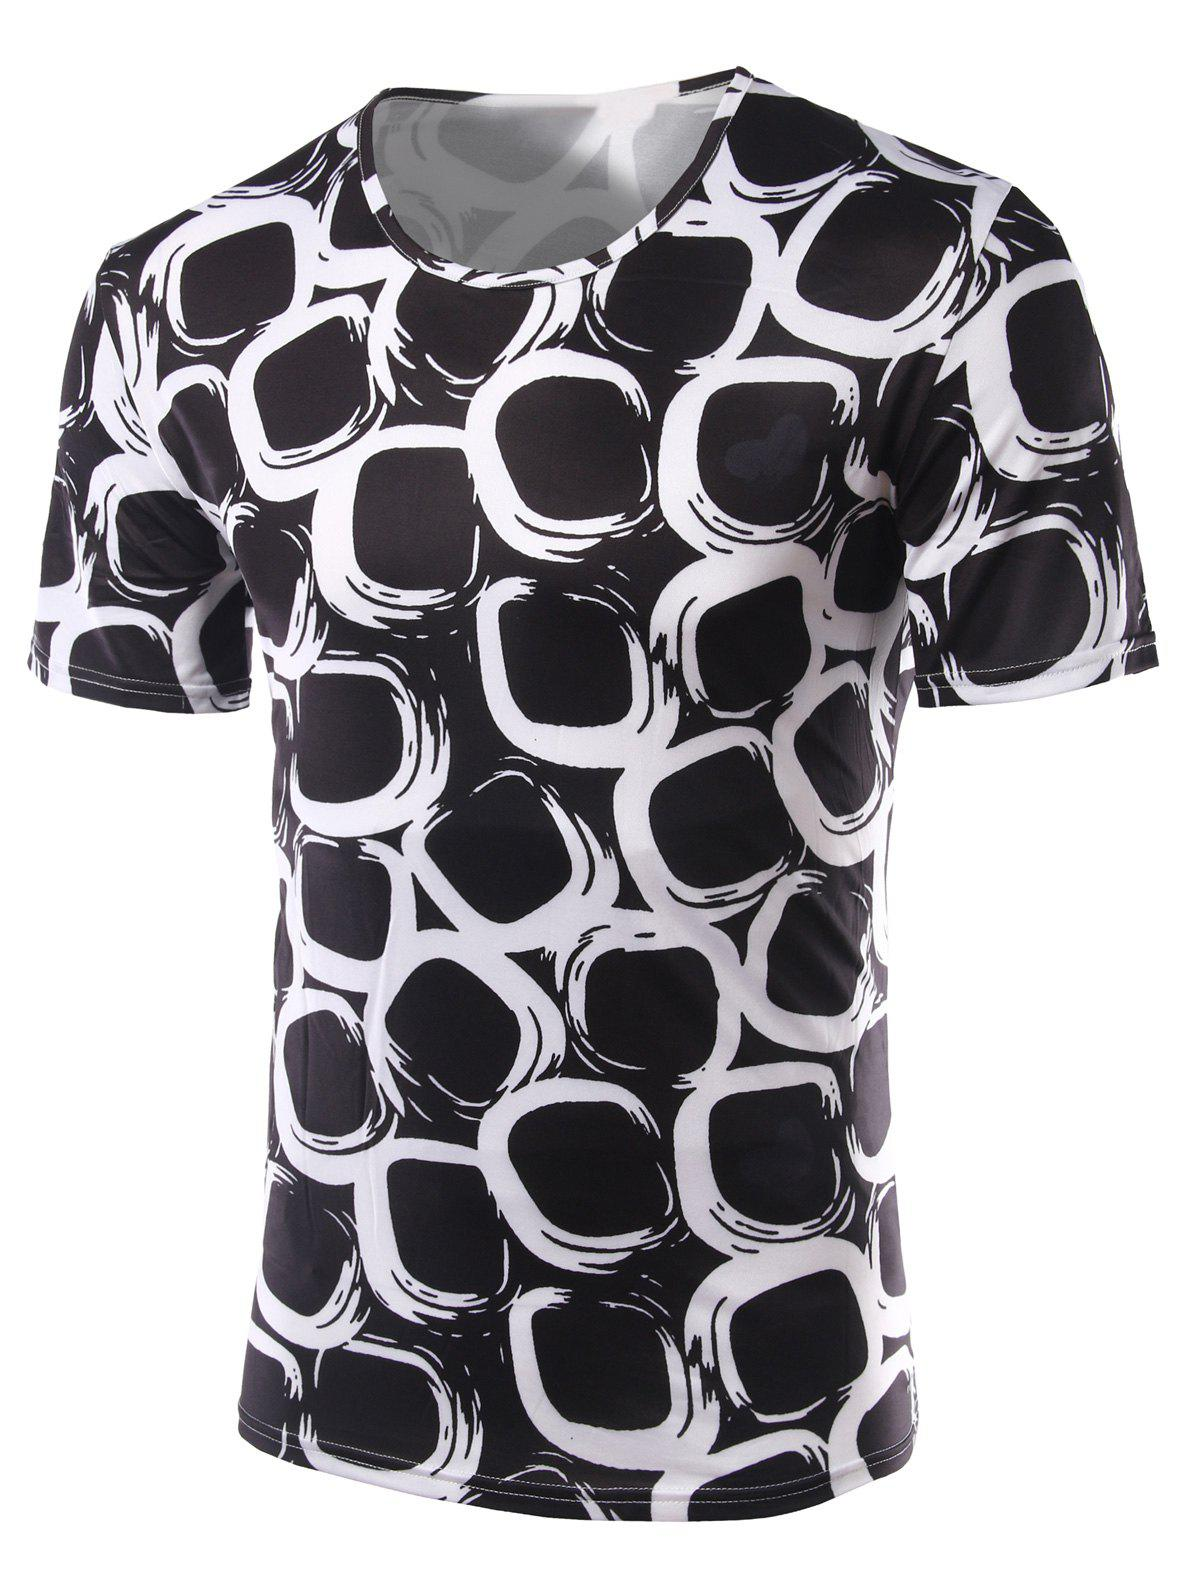 Slim Fit Printing Round Collar Short Sleeves T-Shirts For Men - BLACK 2XL